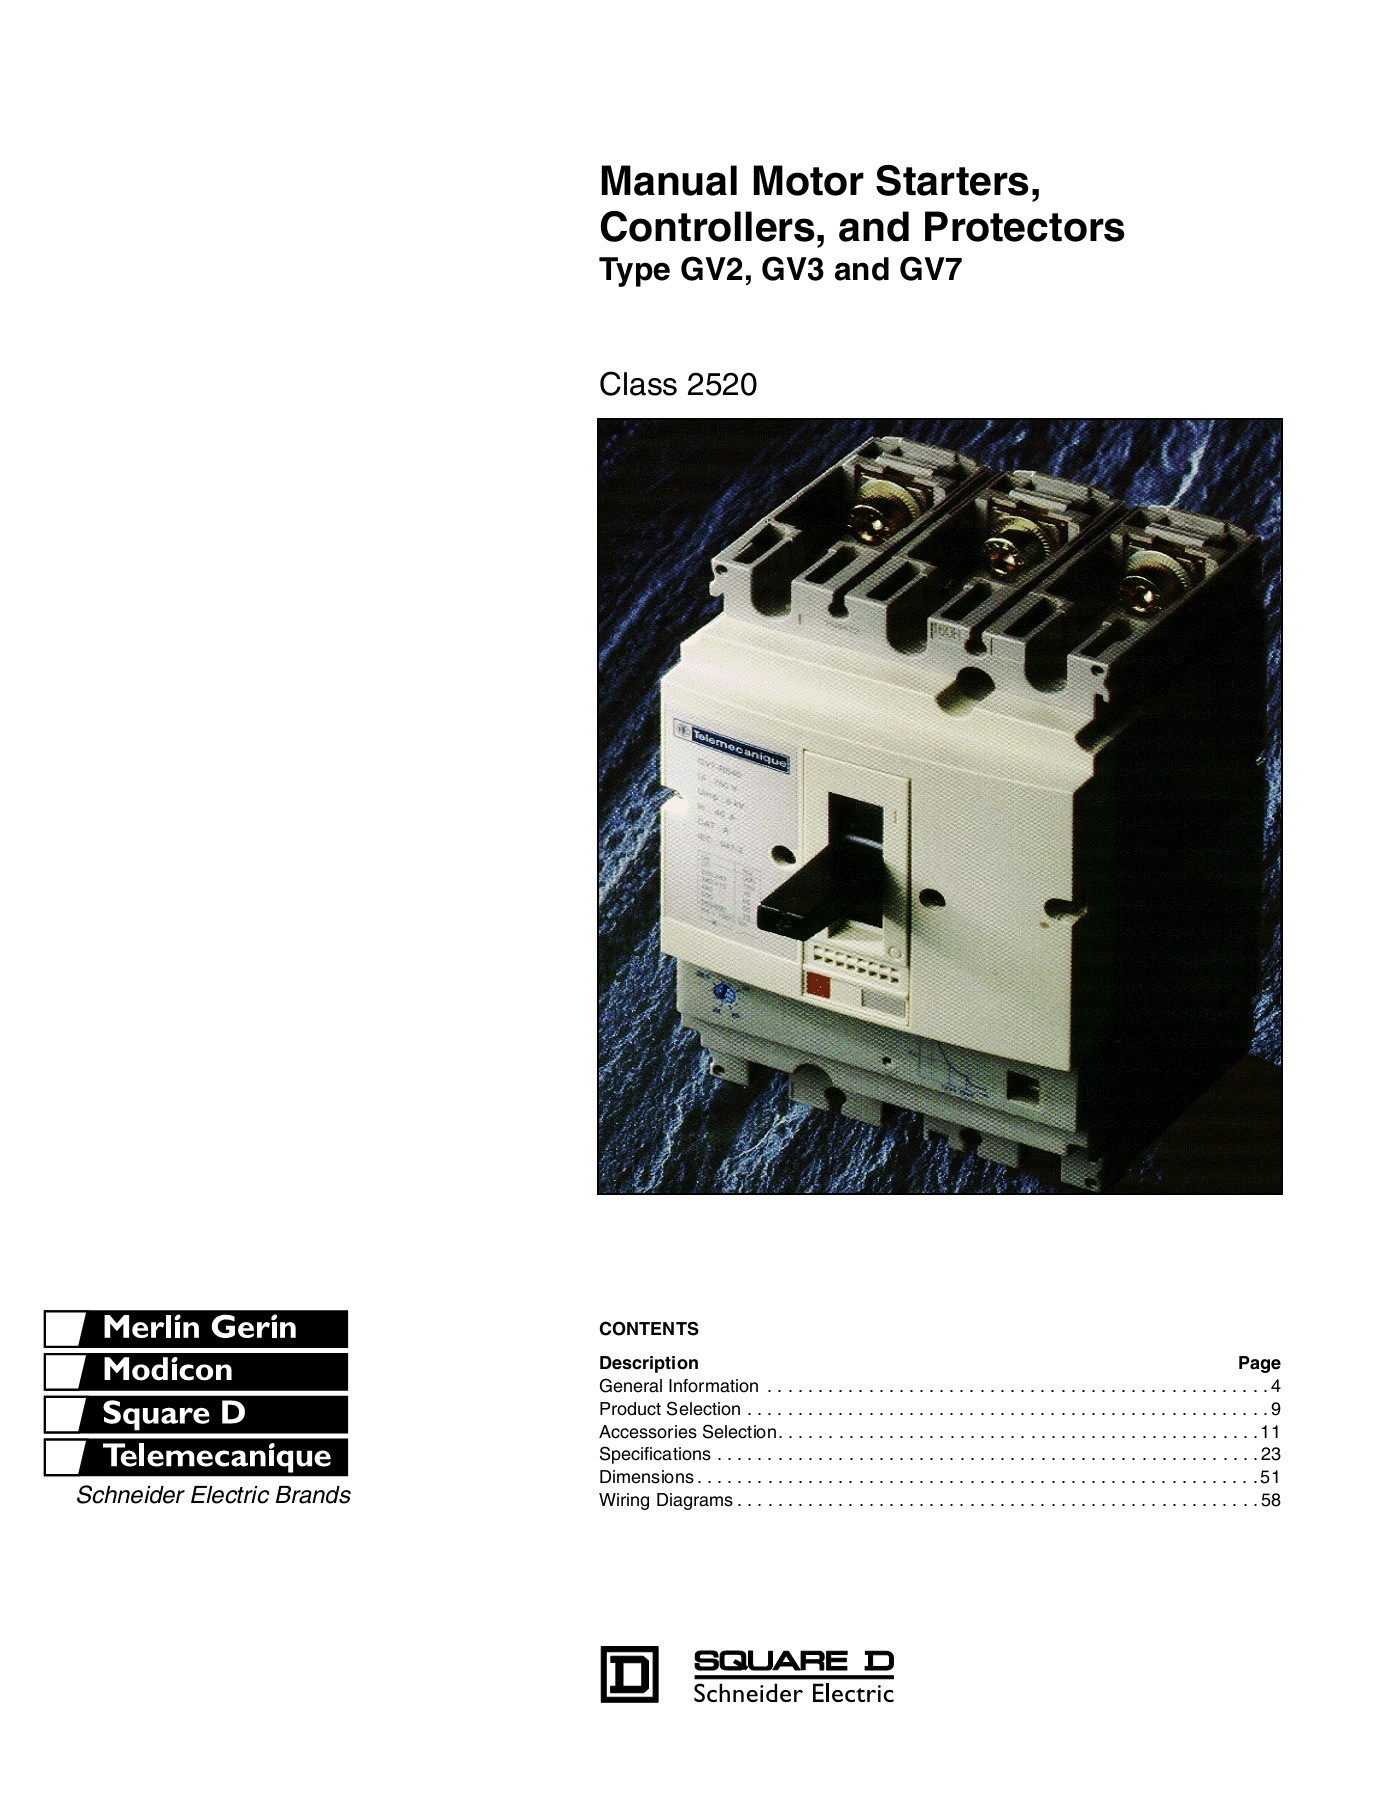 hight resolution of manual motor starters controllers and protectors pages 1 50 text version fliphtml5